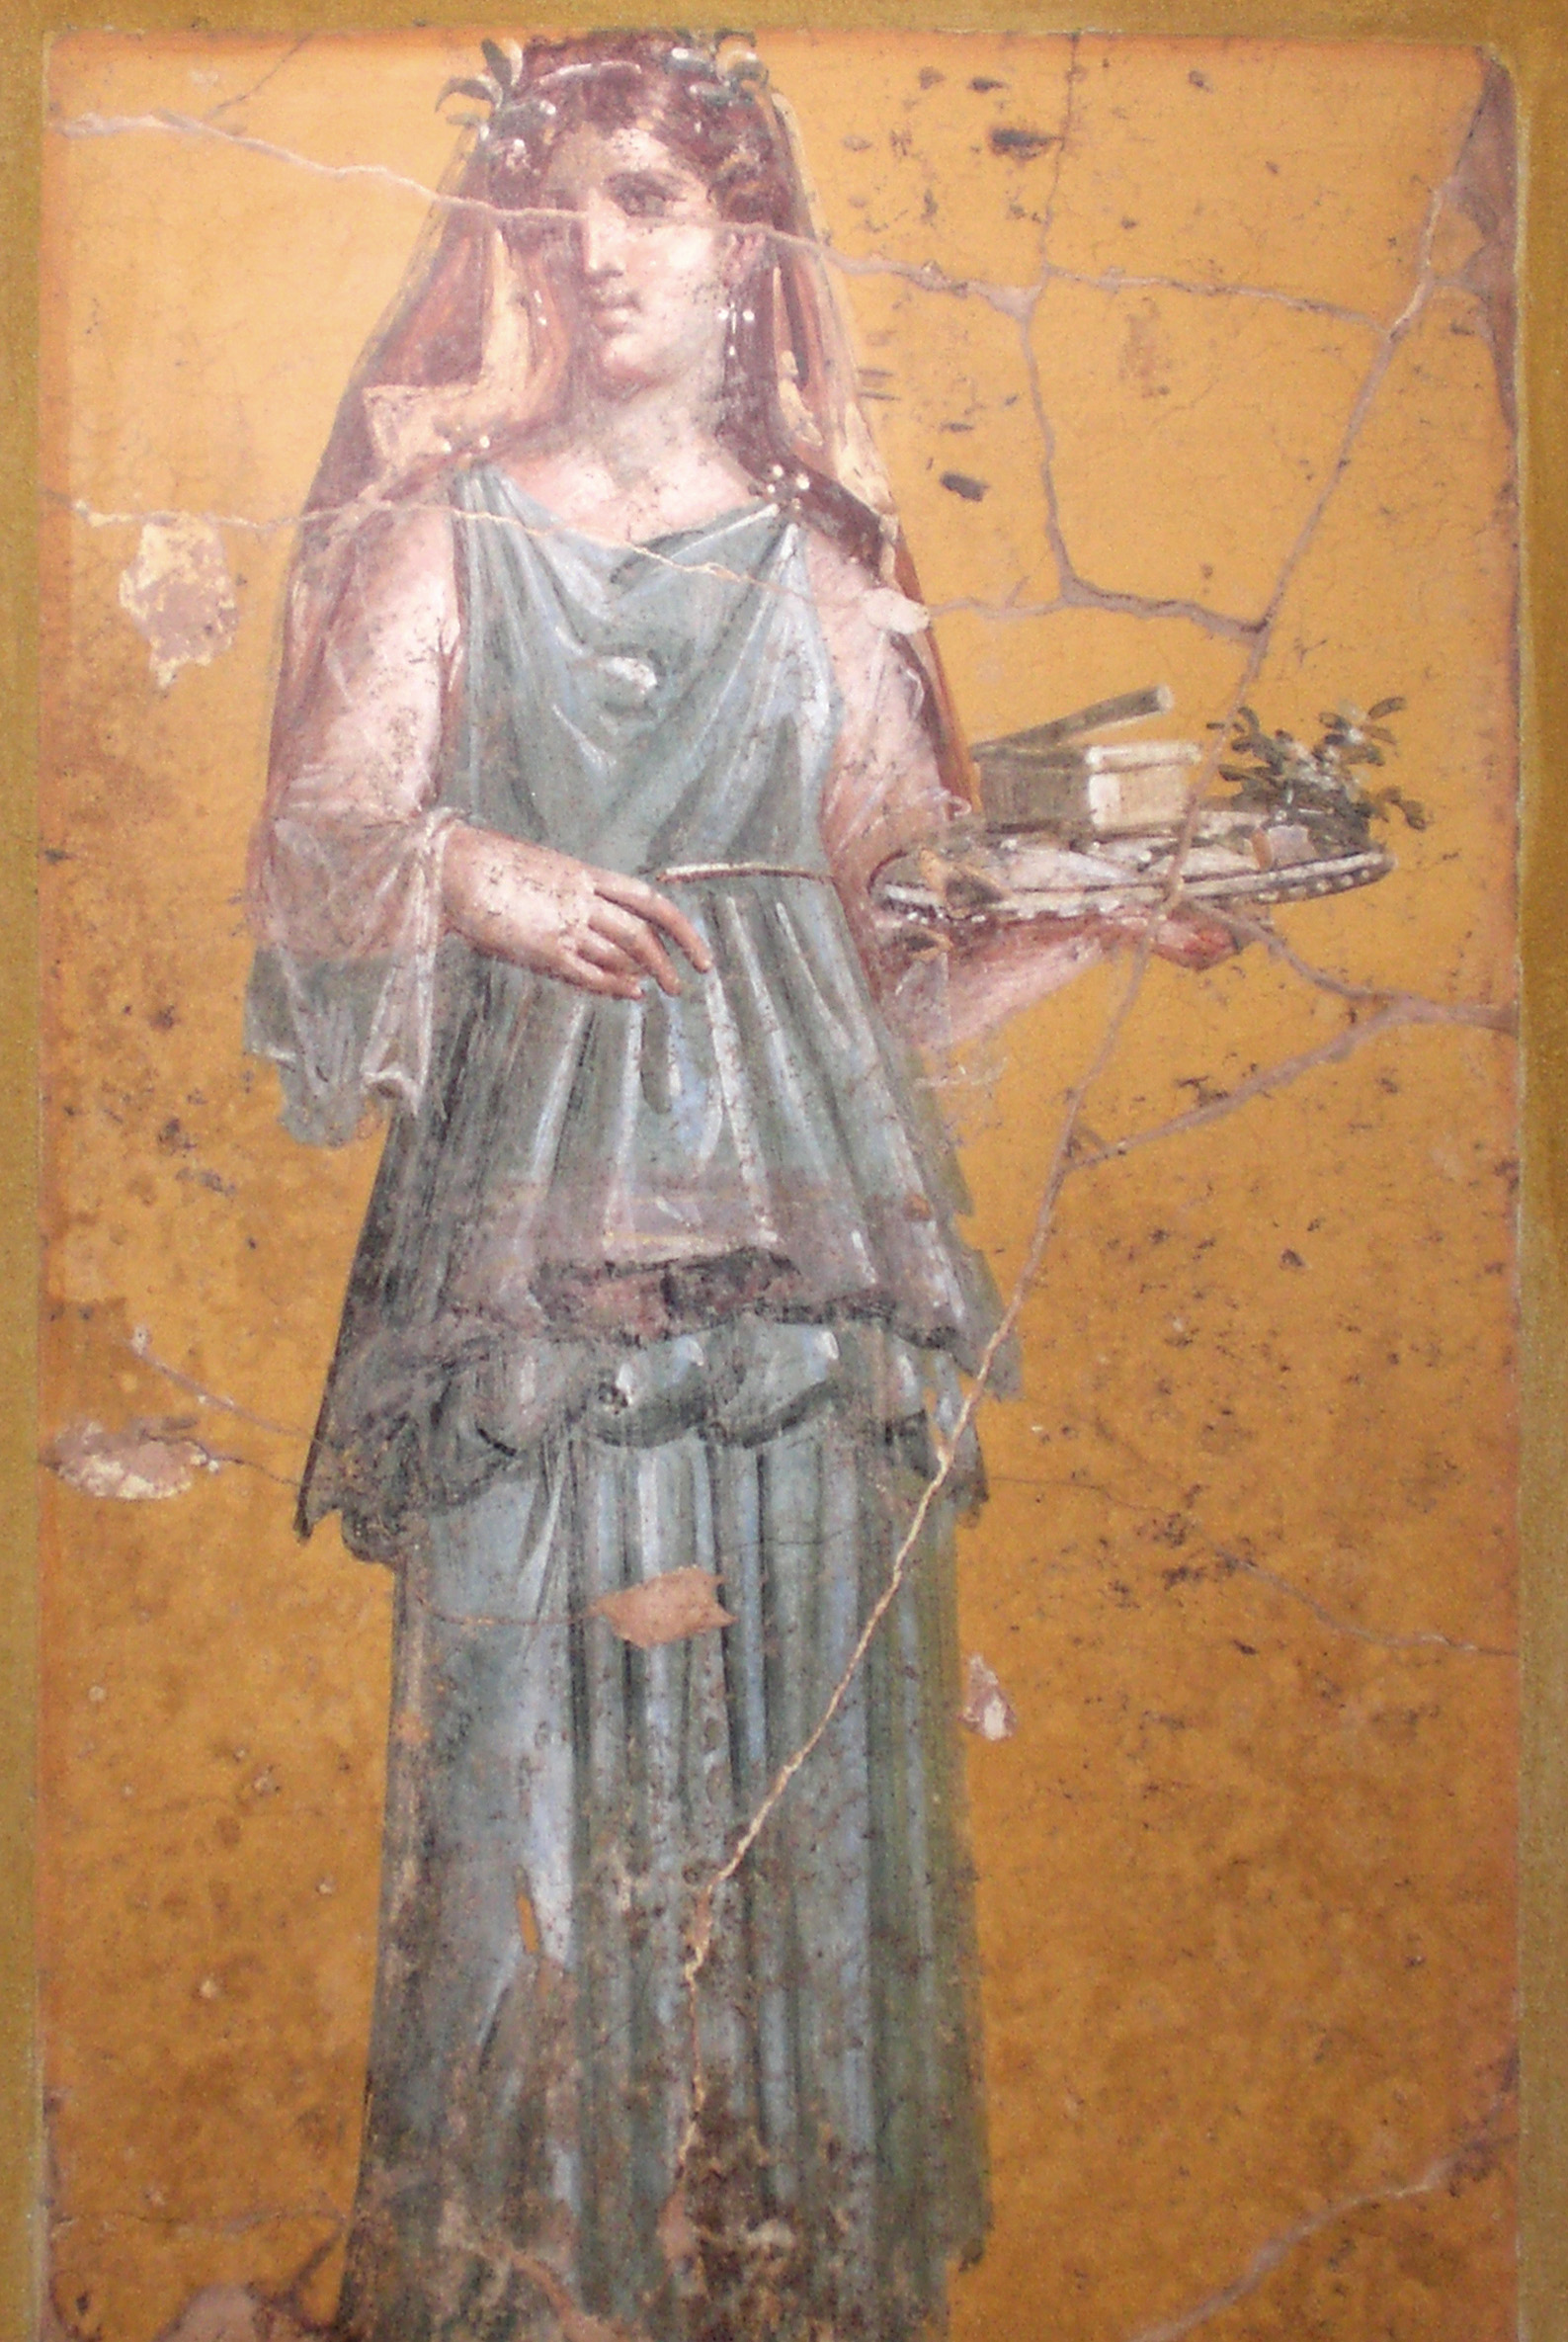 Archivo:Fresco of woman with tray in Villa San Marco retouched.jpg ...